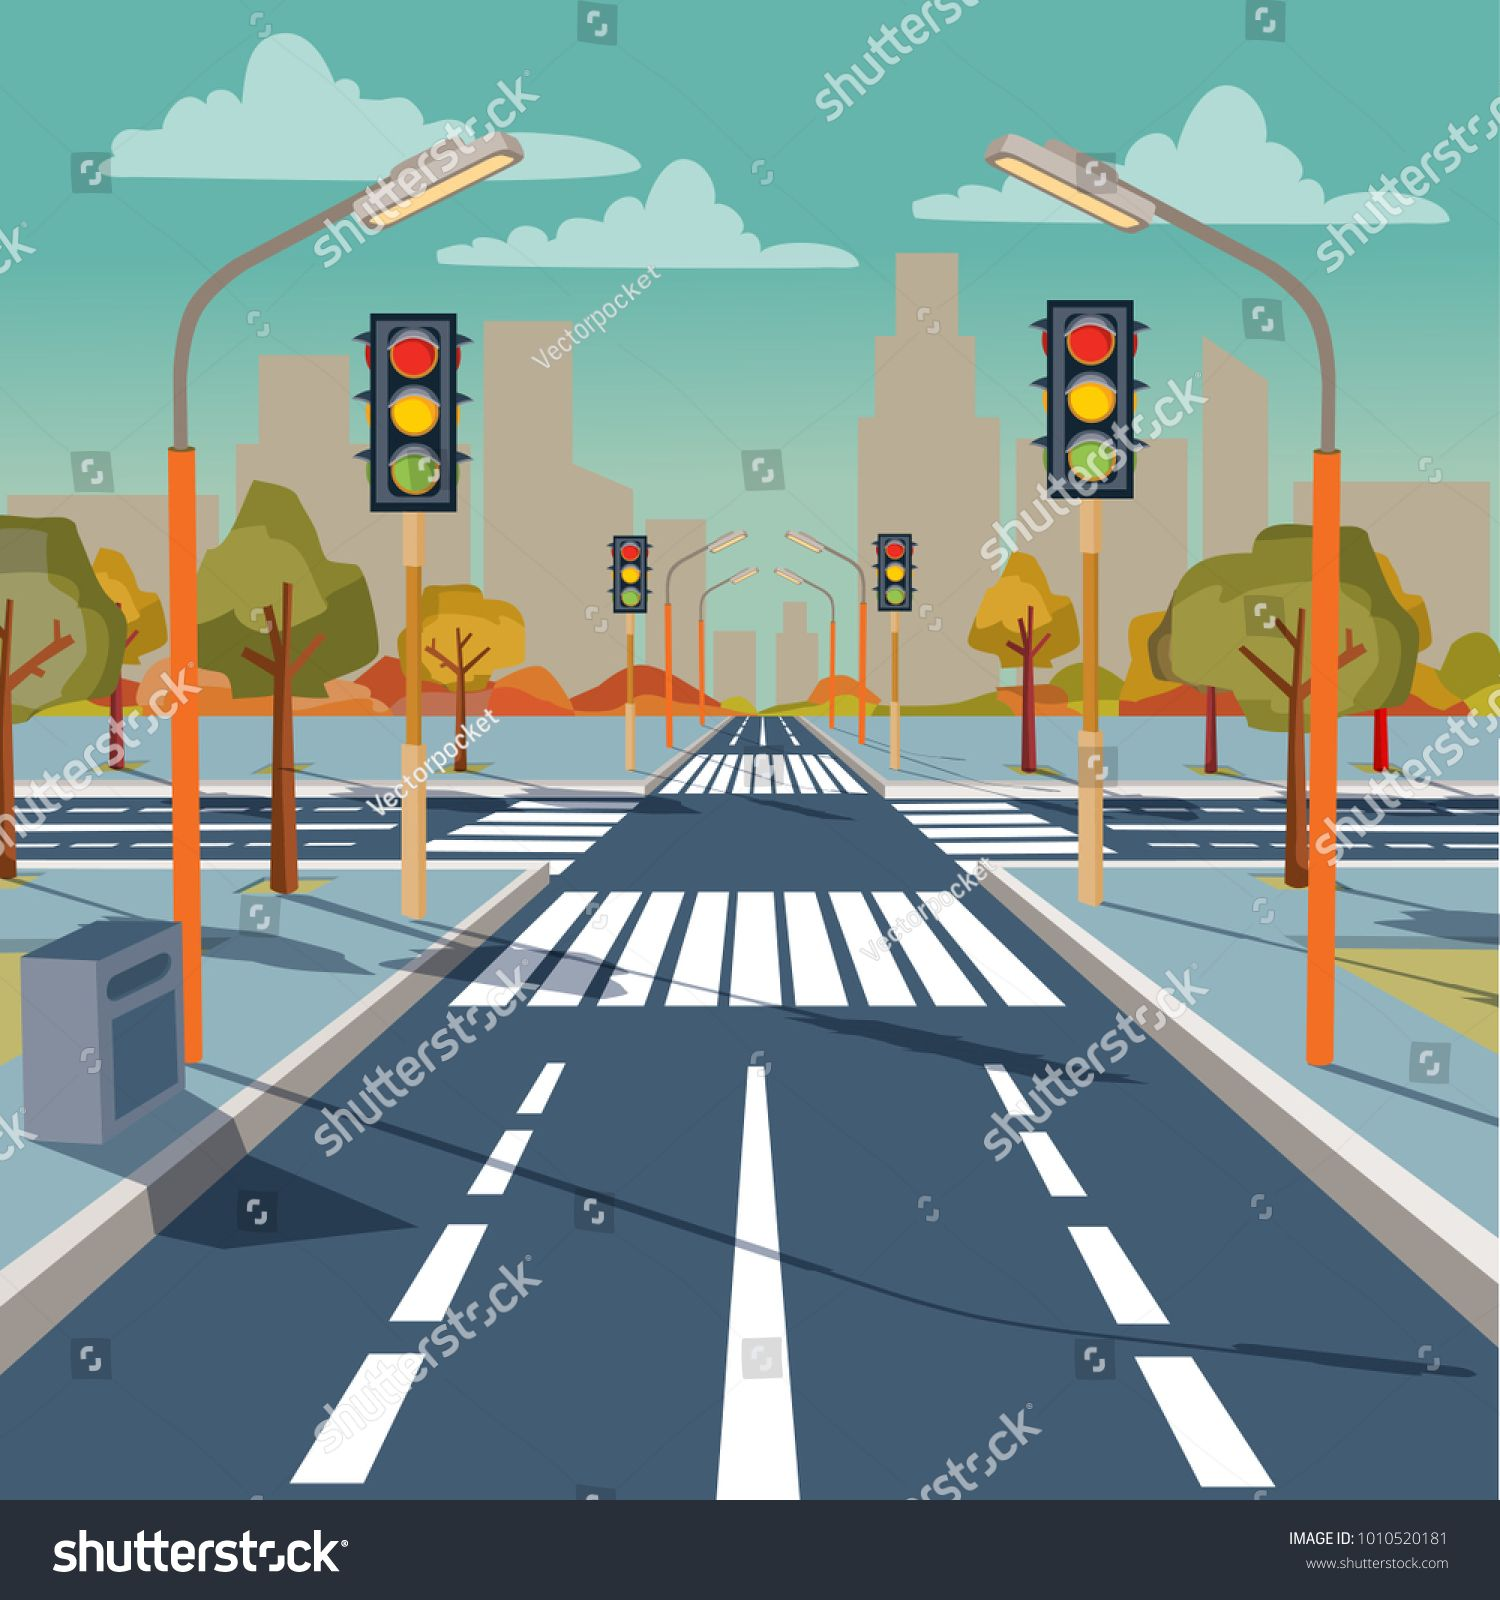 Vector Illustration Of City Crossroad With Traffic Lights Road